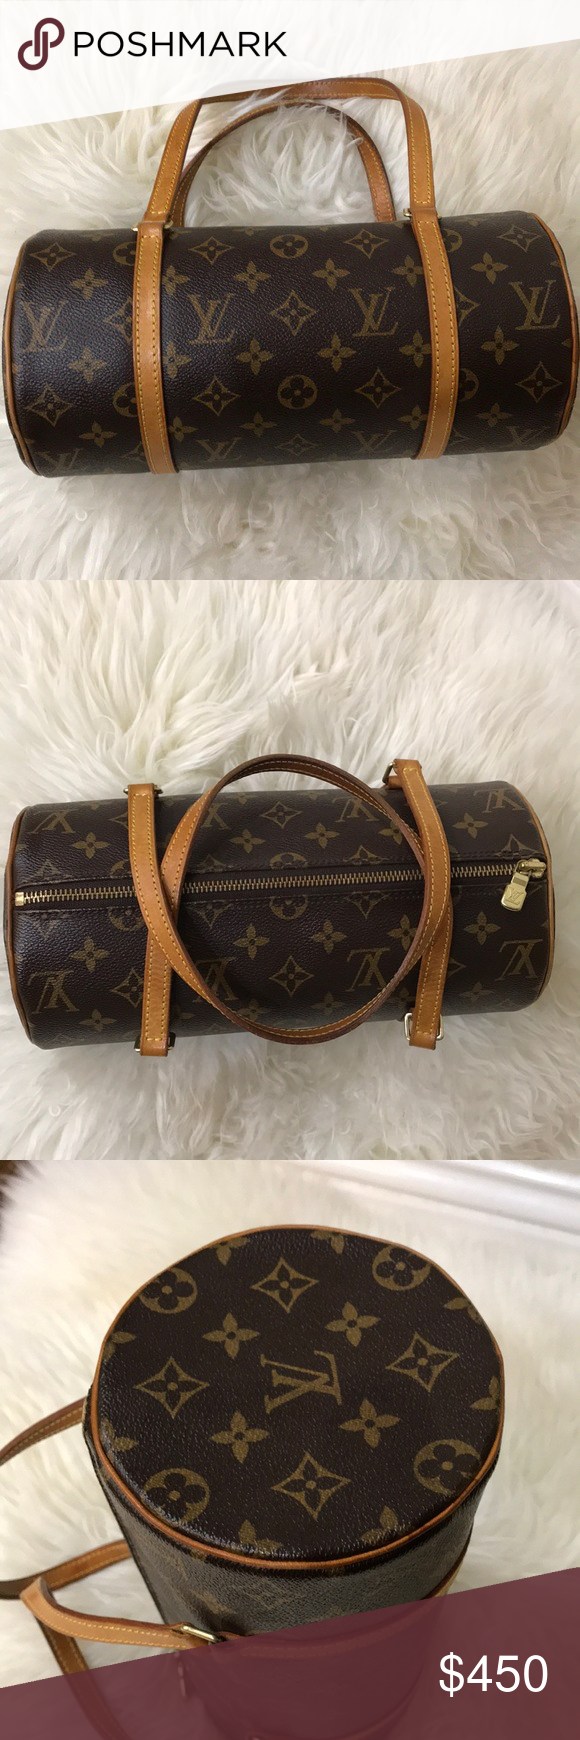 a03c573722a2 Louis Vuitton Papillon PRe owned Louis Vuitton Papillon 26. very good used  condition. Showing normal wear but nothing major.. clean inside and out.